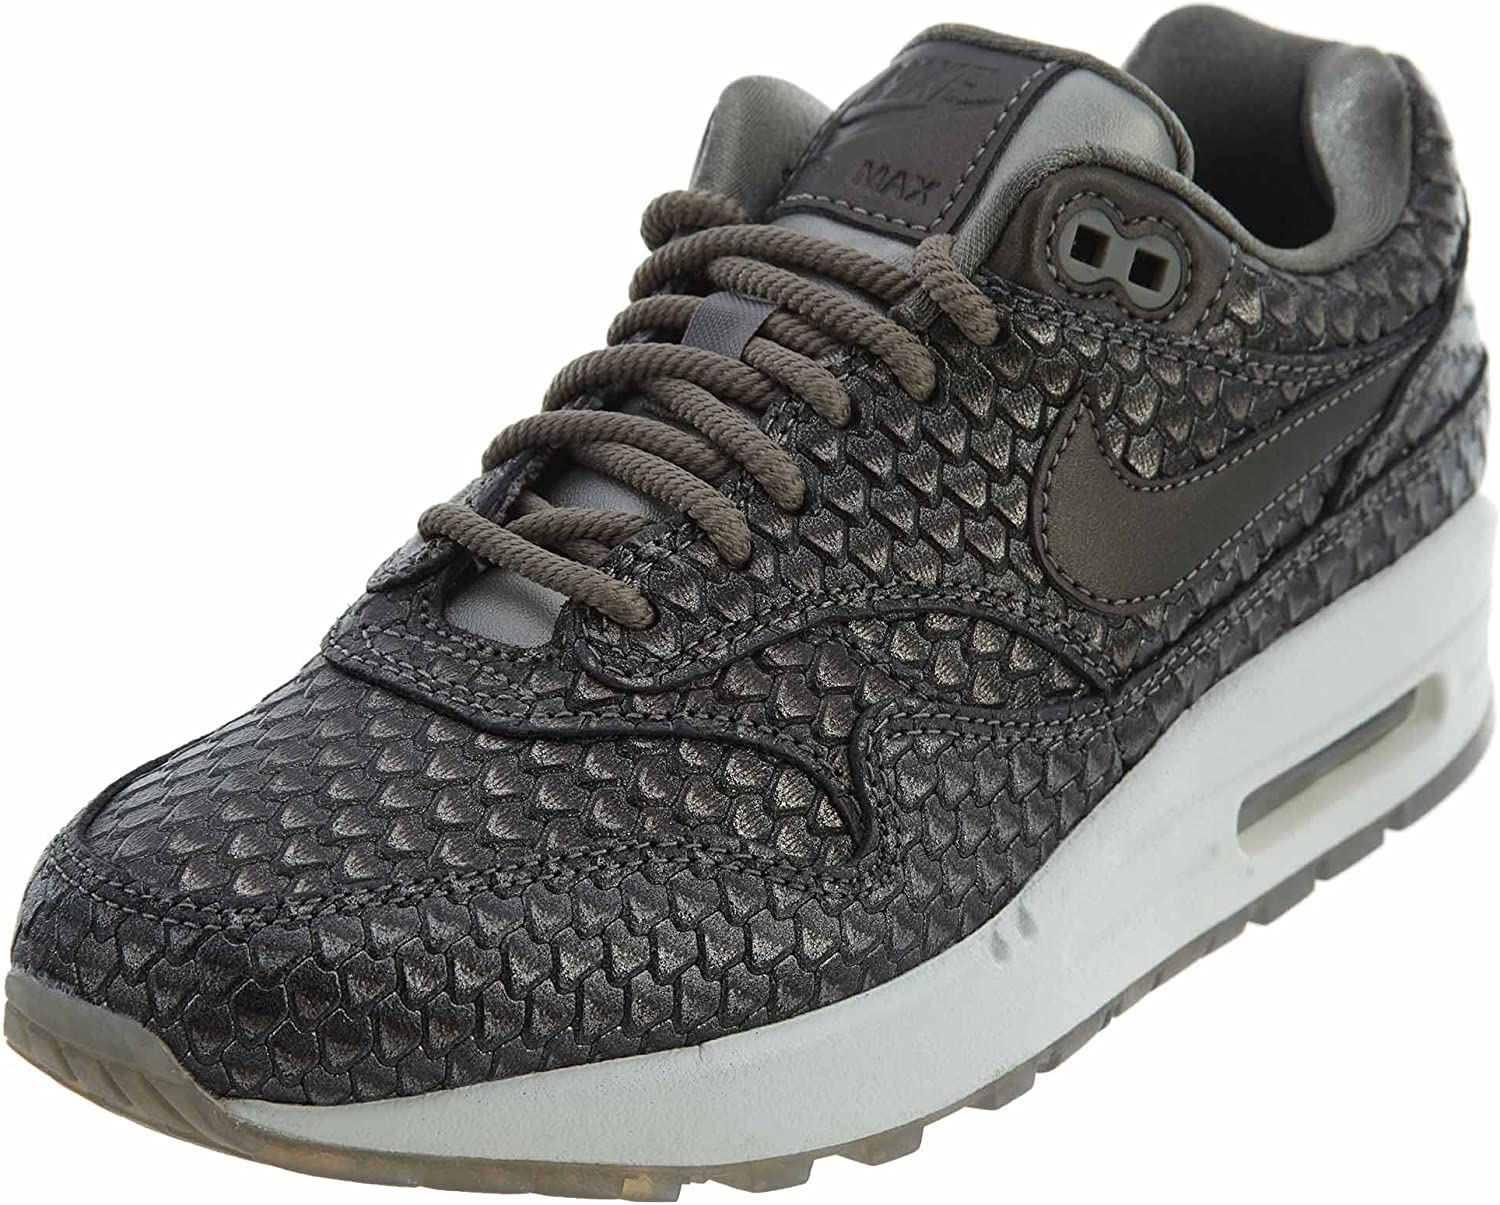 Nike Air Max 1 Premium Women s Running Shoes Metallic Pewter Metallic Pewter 454746-015